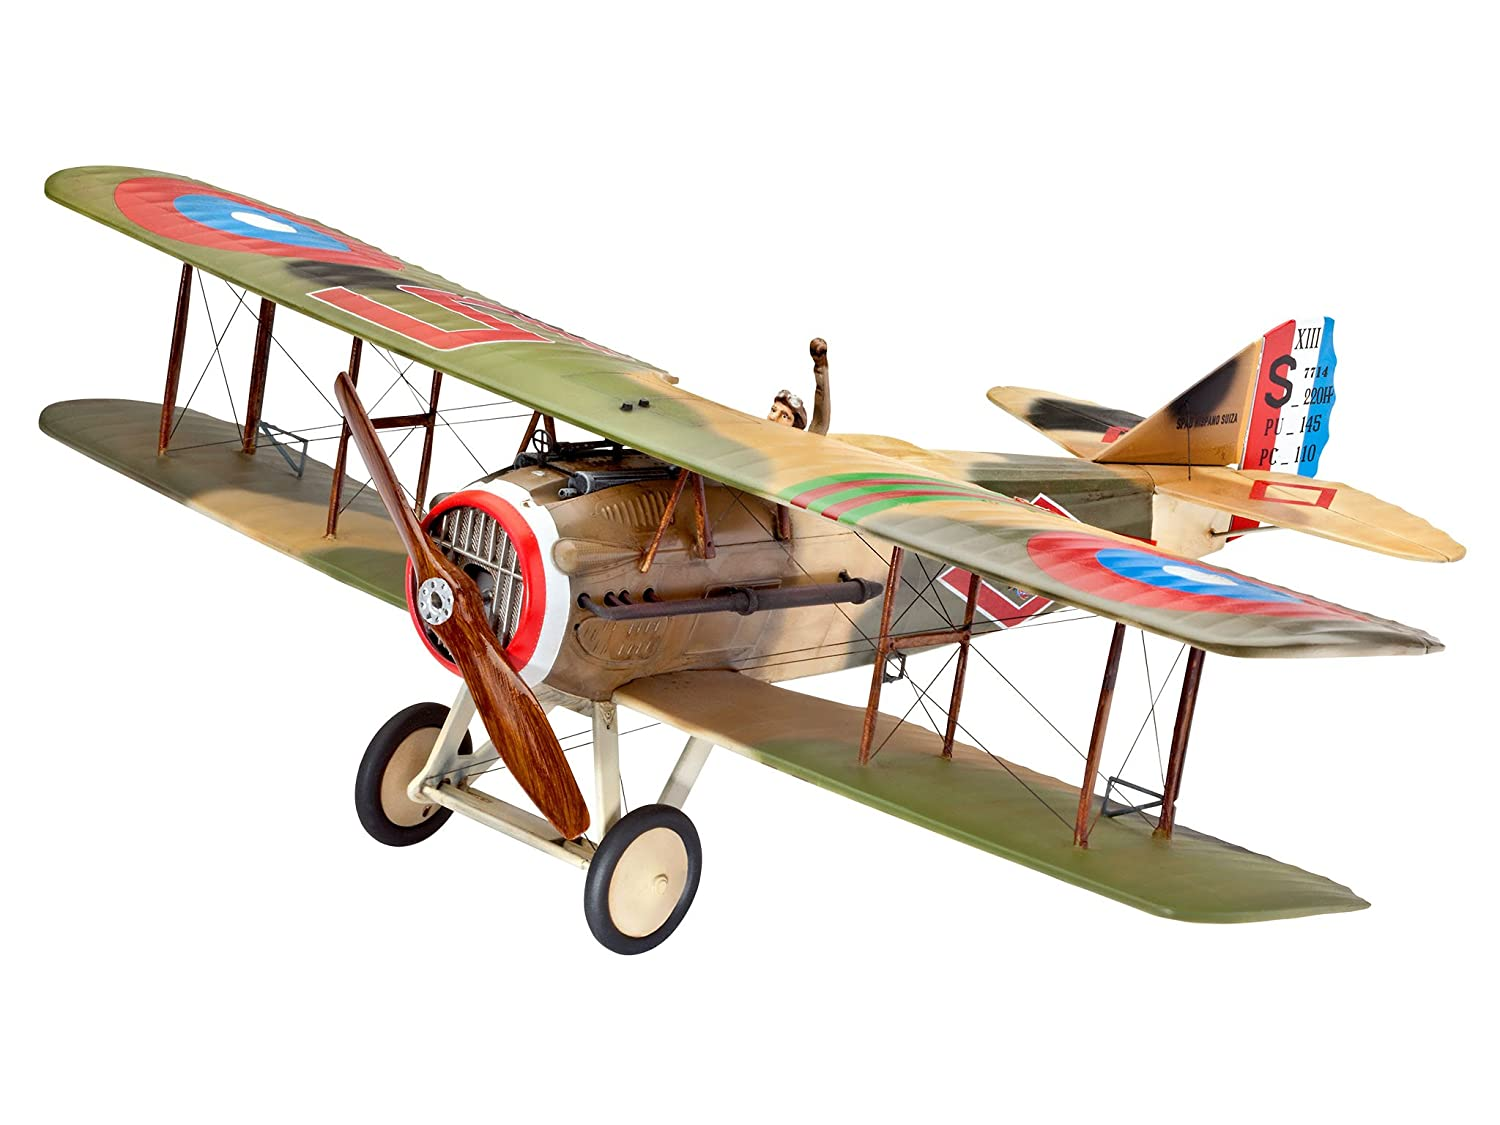 Revell - Spad XIII WW1 Fighter 1:28 Scale RG4730